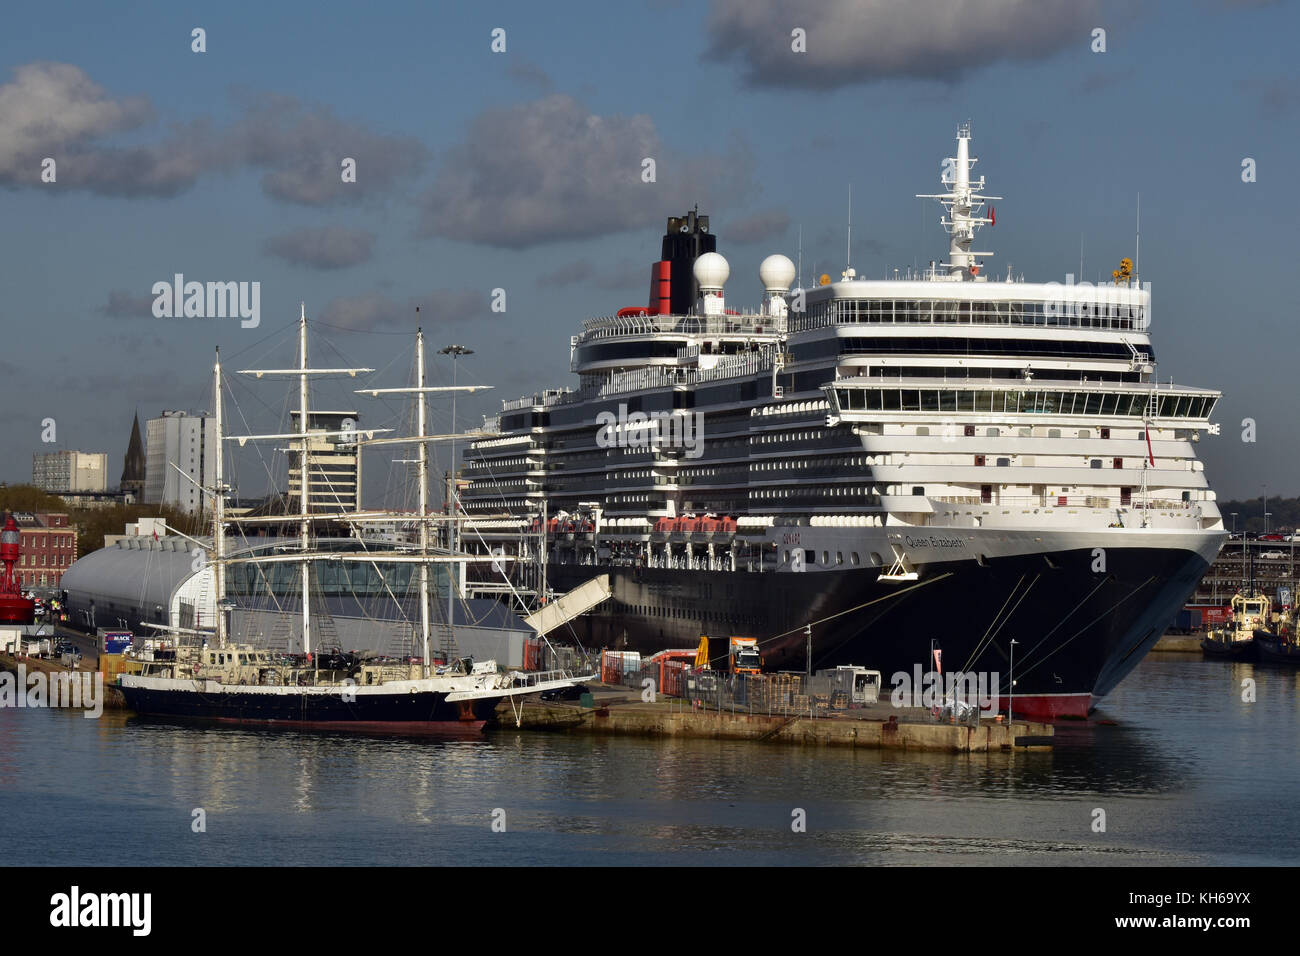 the cunard cruise liner queen Elizabeth in the port of Southampton docks next to a three mast sailing ship of a - Stock Image